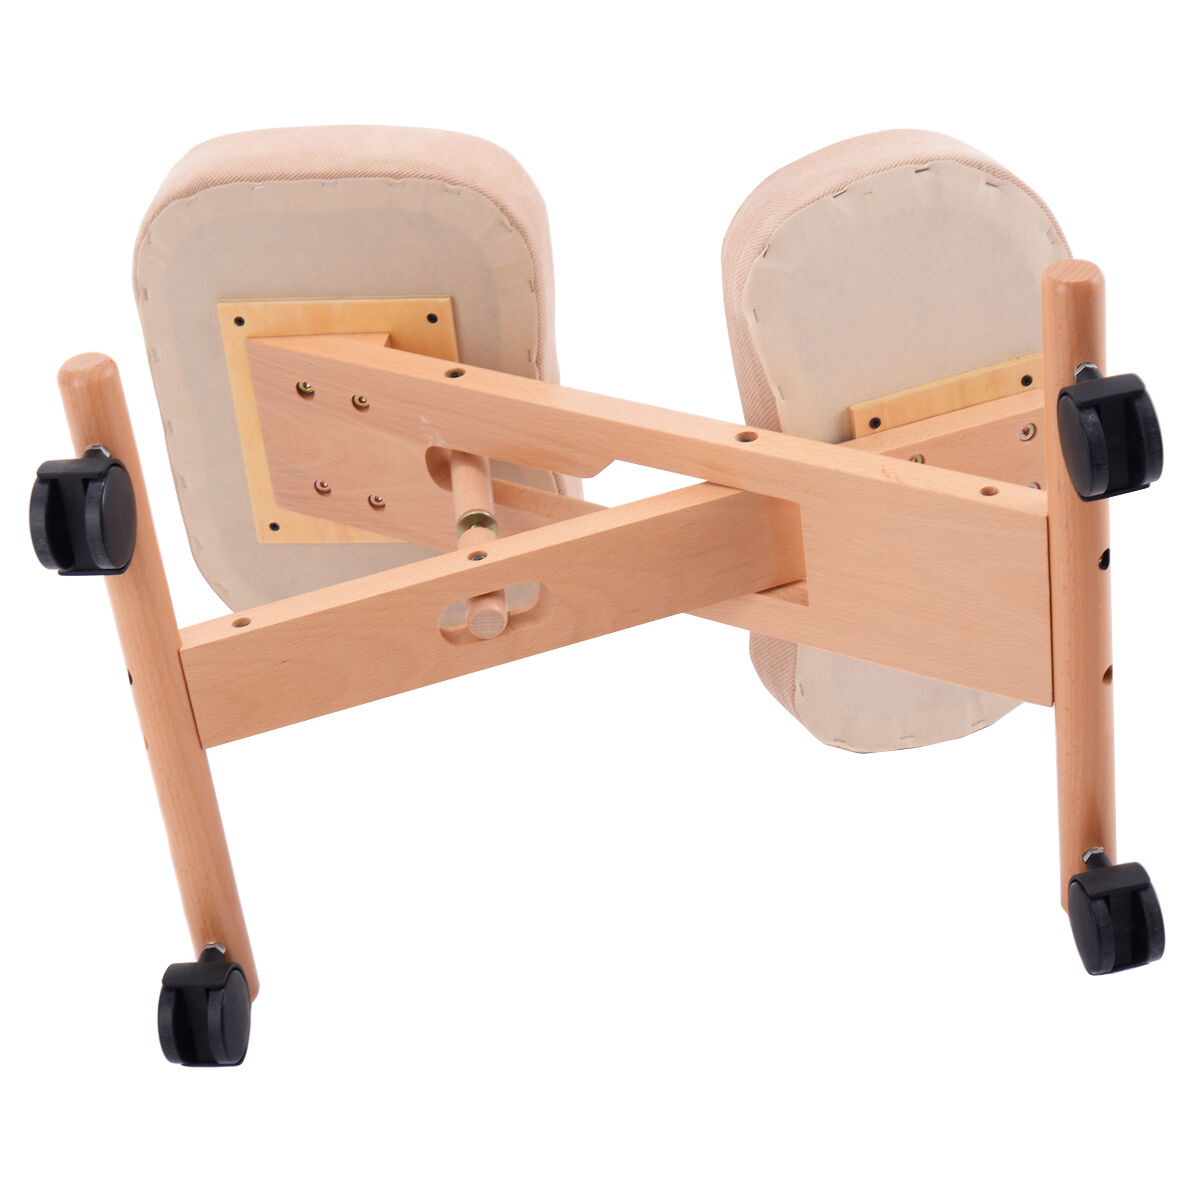 ergonomic posture kneeling chair papasan frame sale wooden orthopaedic stool